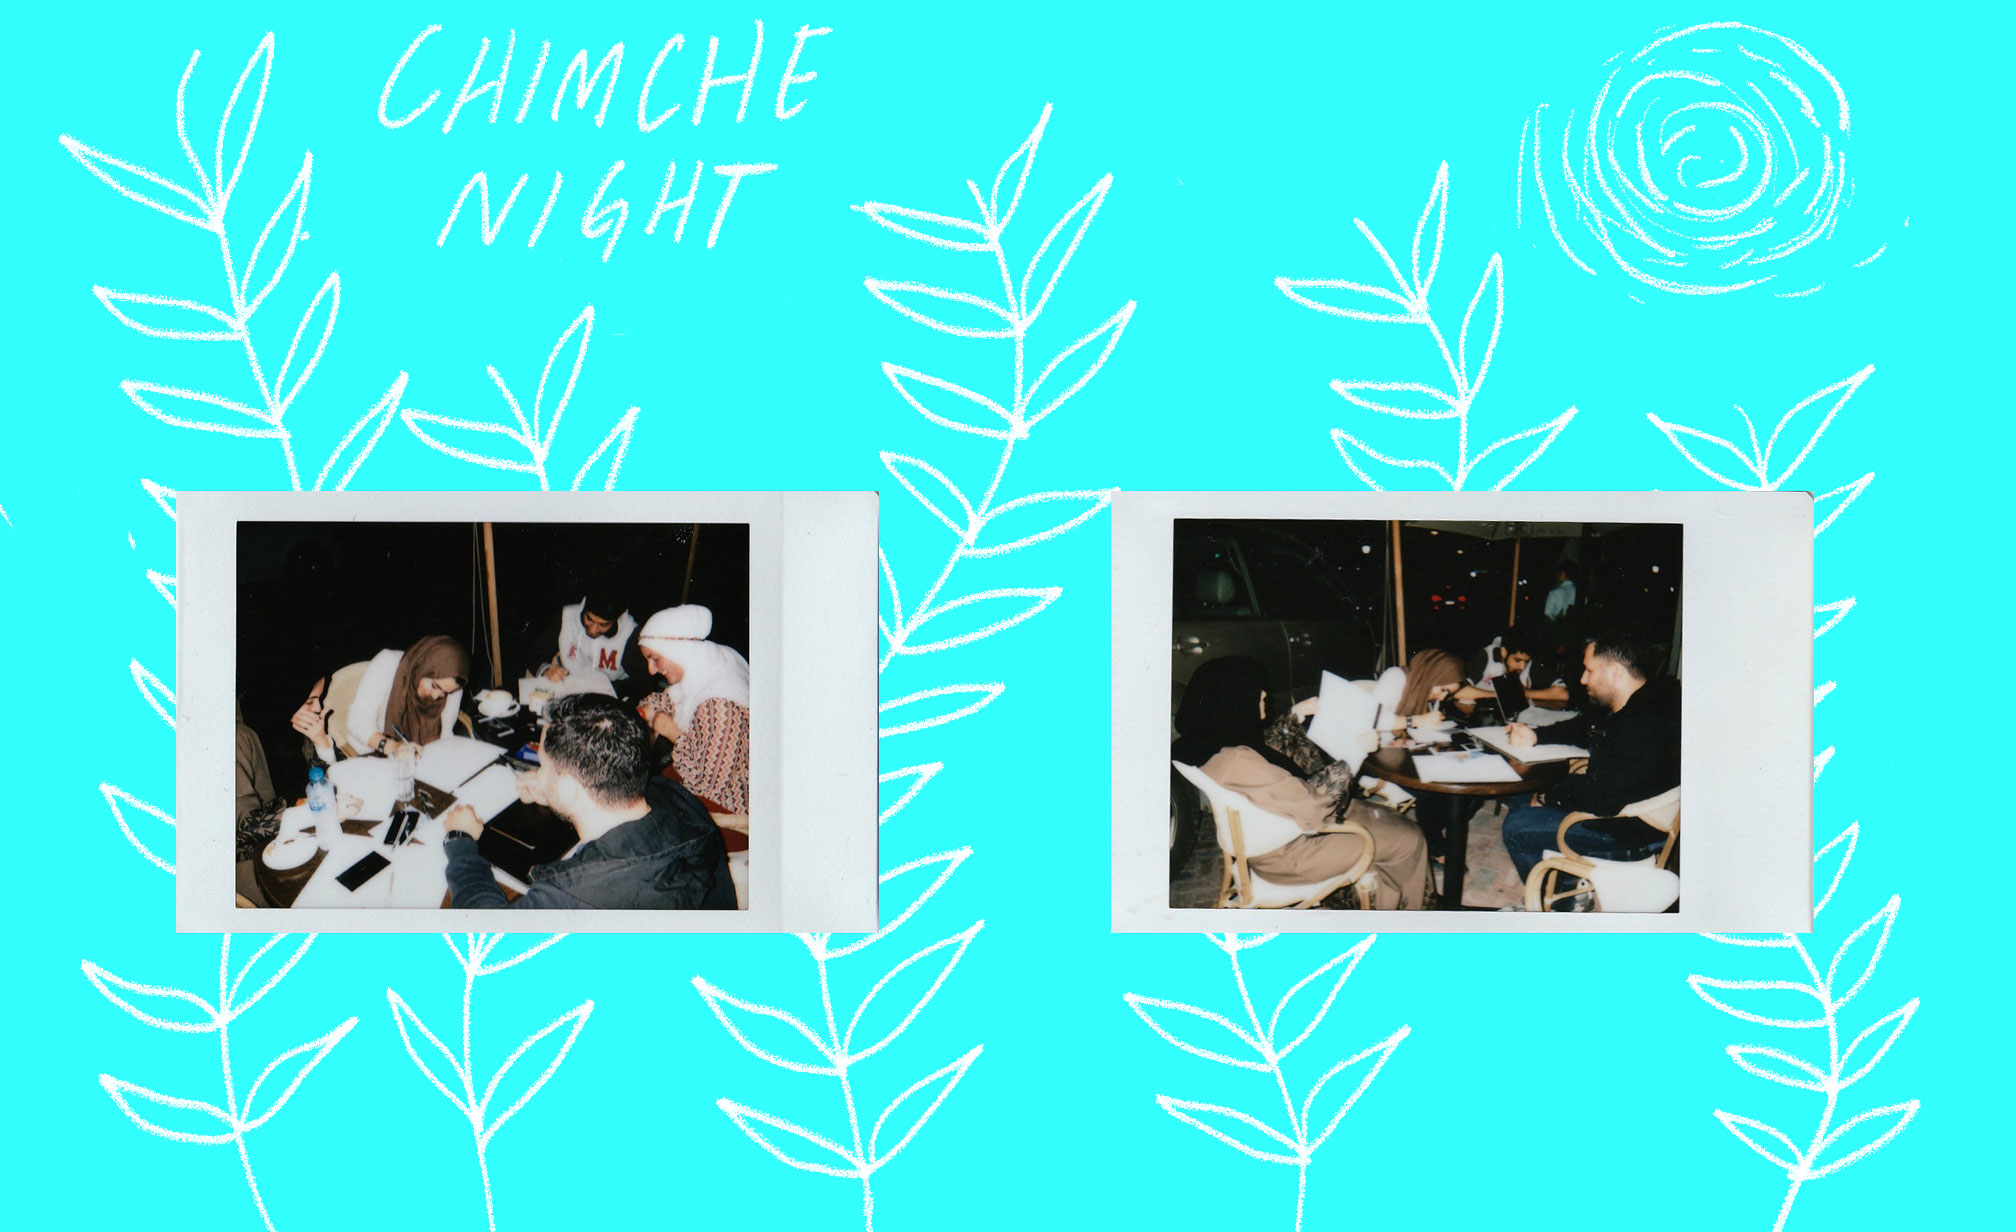 "very """"""candid"""""" photographs of the last chimche night of 2016"